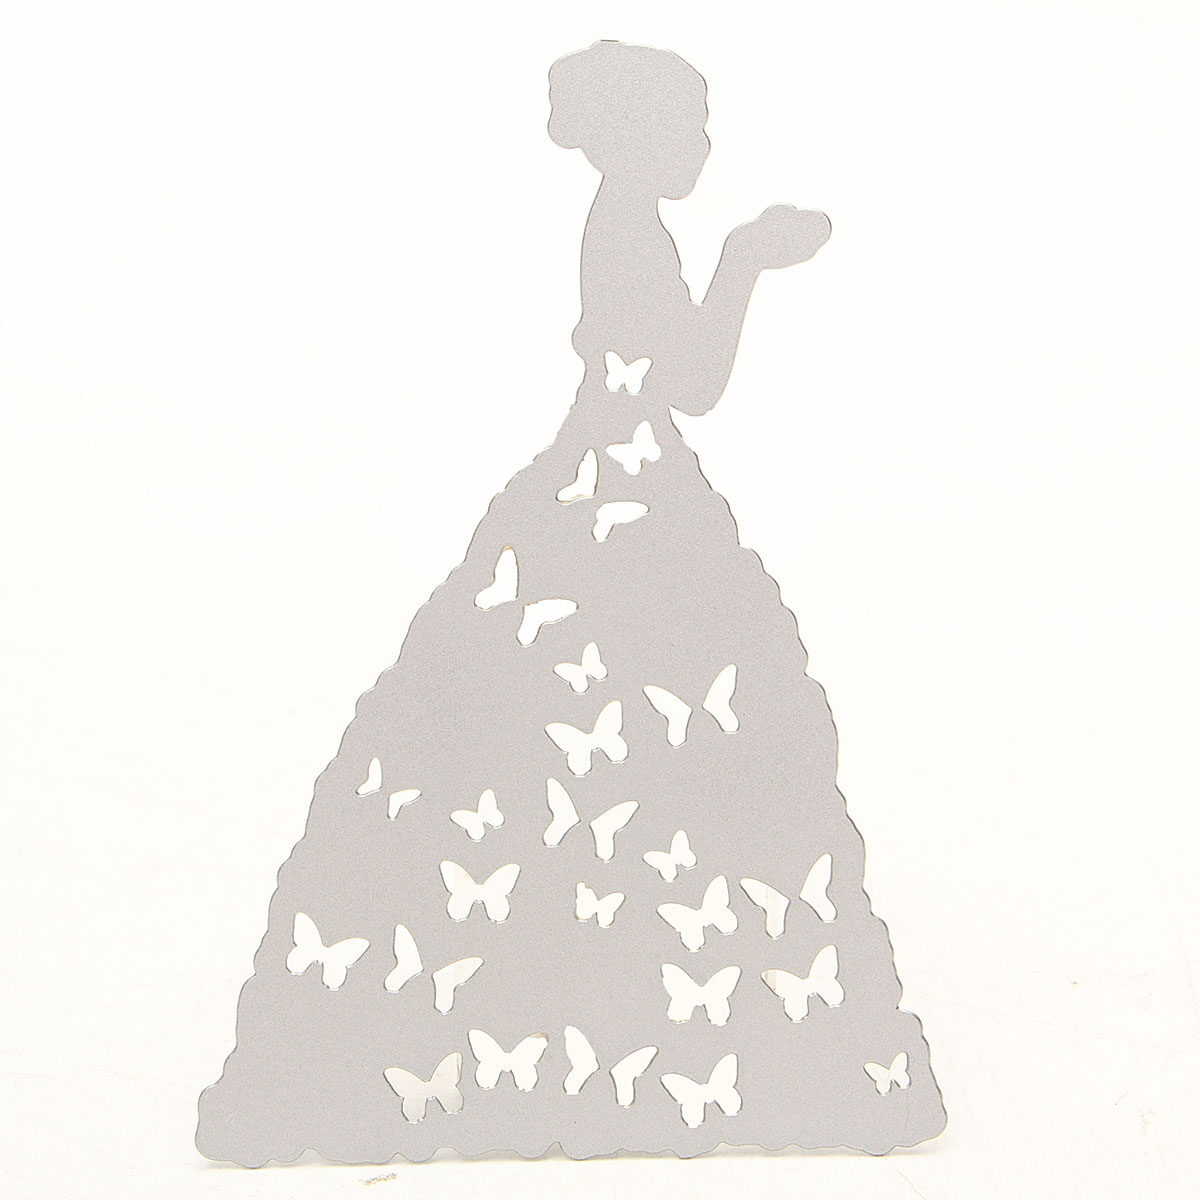 Modern Girl Princess Side Cutting Dies DIY Scrapbook Photo Album Paper Craft